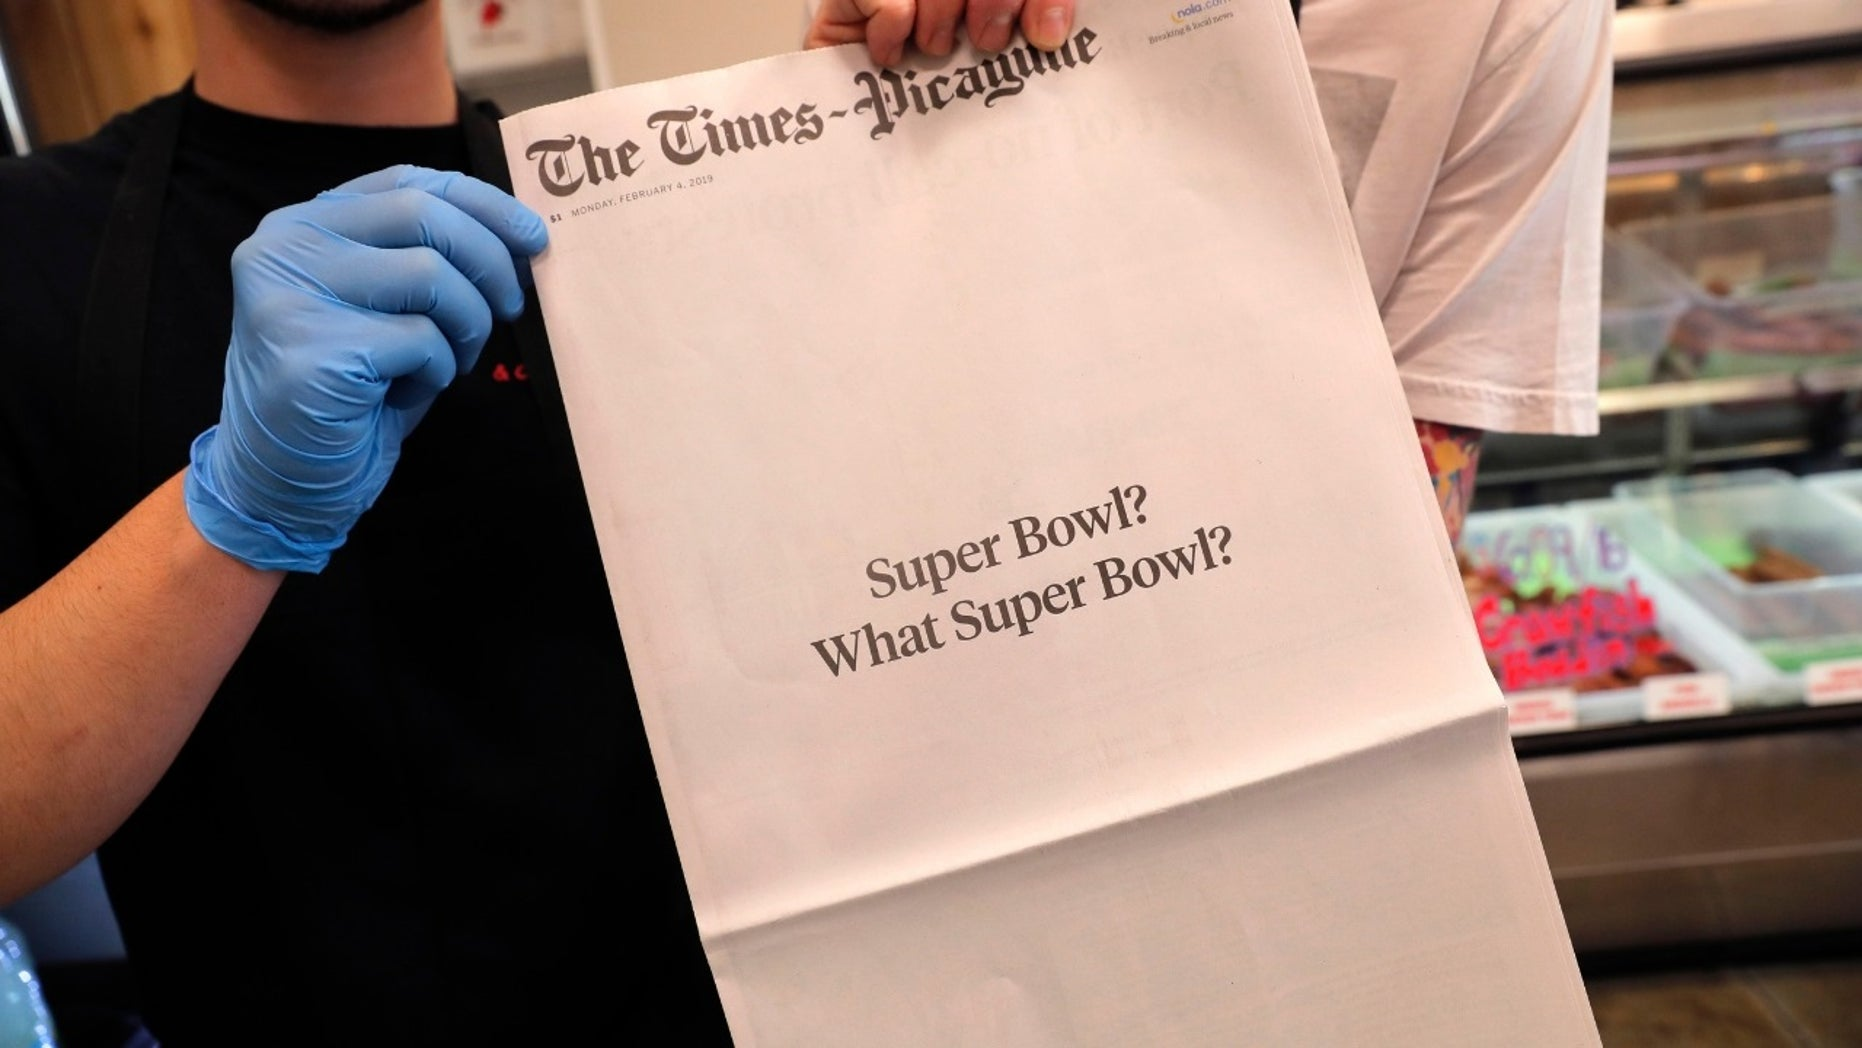 """The New Orleans Times-Picayune hilariously trolled the Super Bowl after Monday's front page stated, """"Super Bowl? What Super Bowl?"""""""